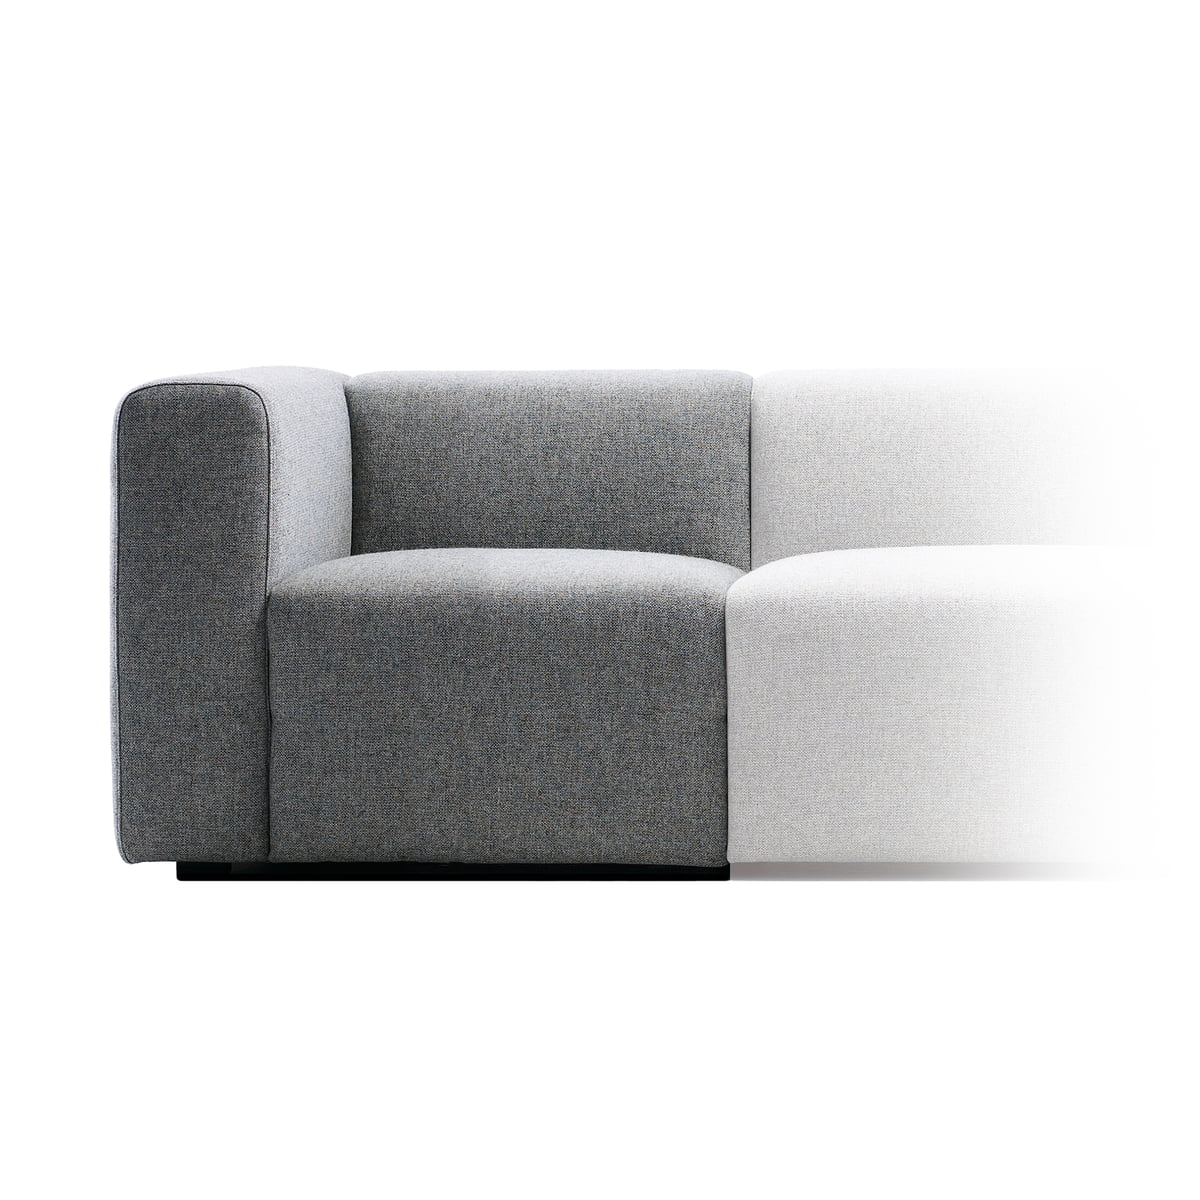 Mags Sofa Modules Narrow By Hay In Our Shop